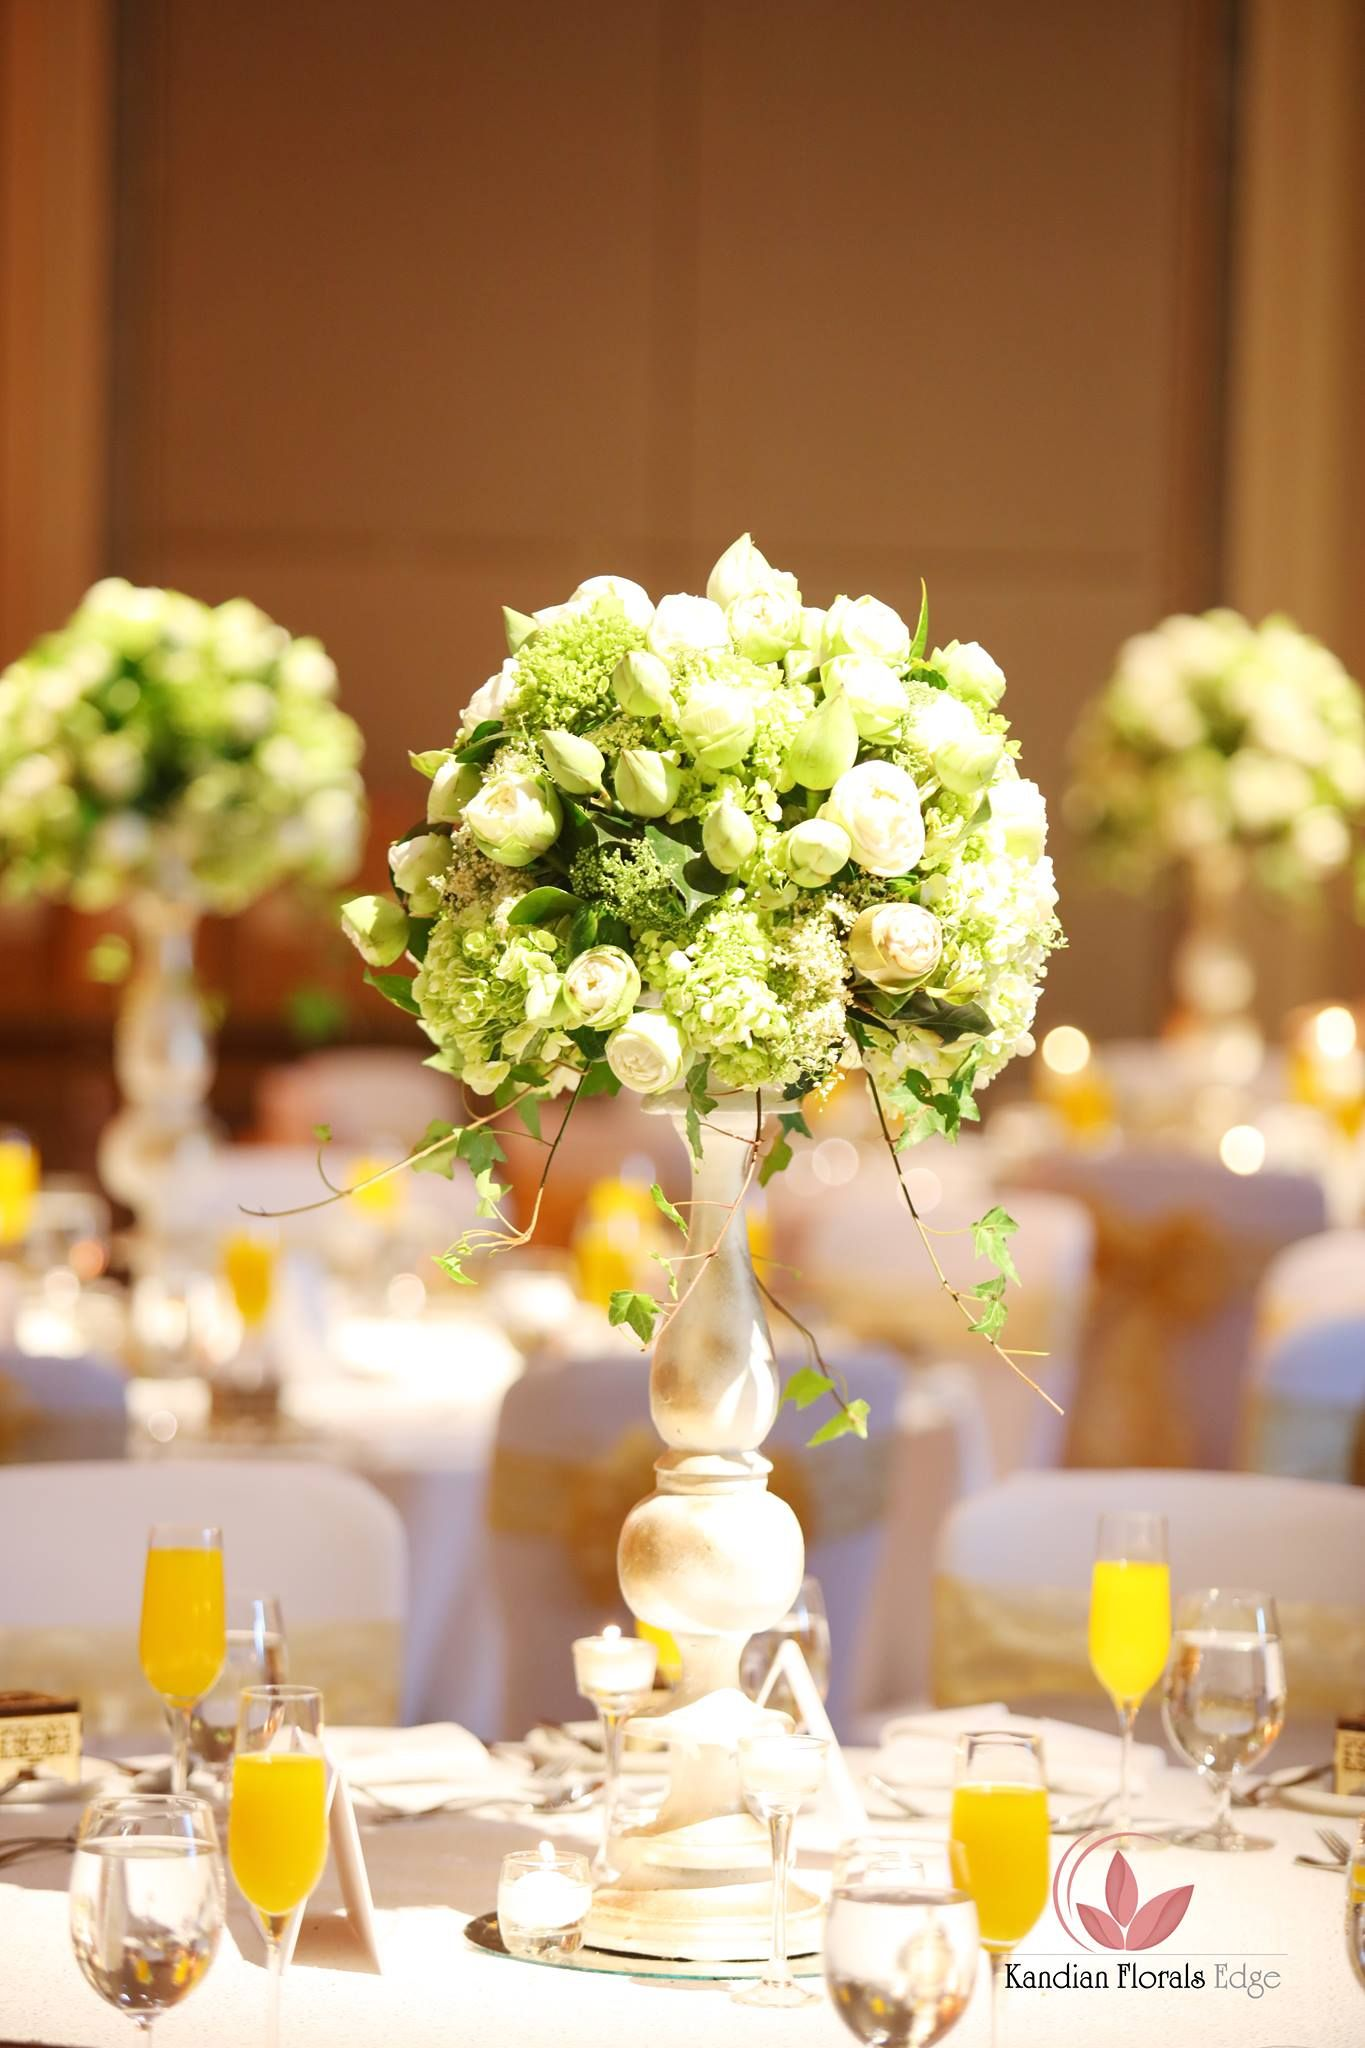 Lotus Srilanka Wedding Lanka Traditional Table Decor